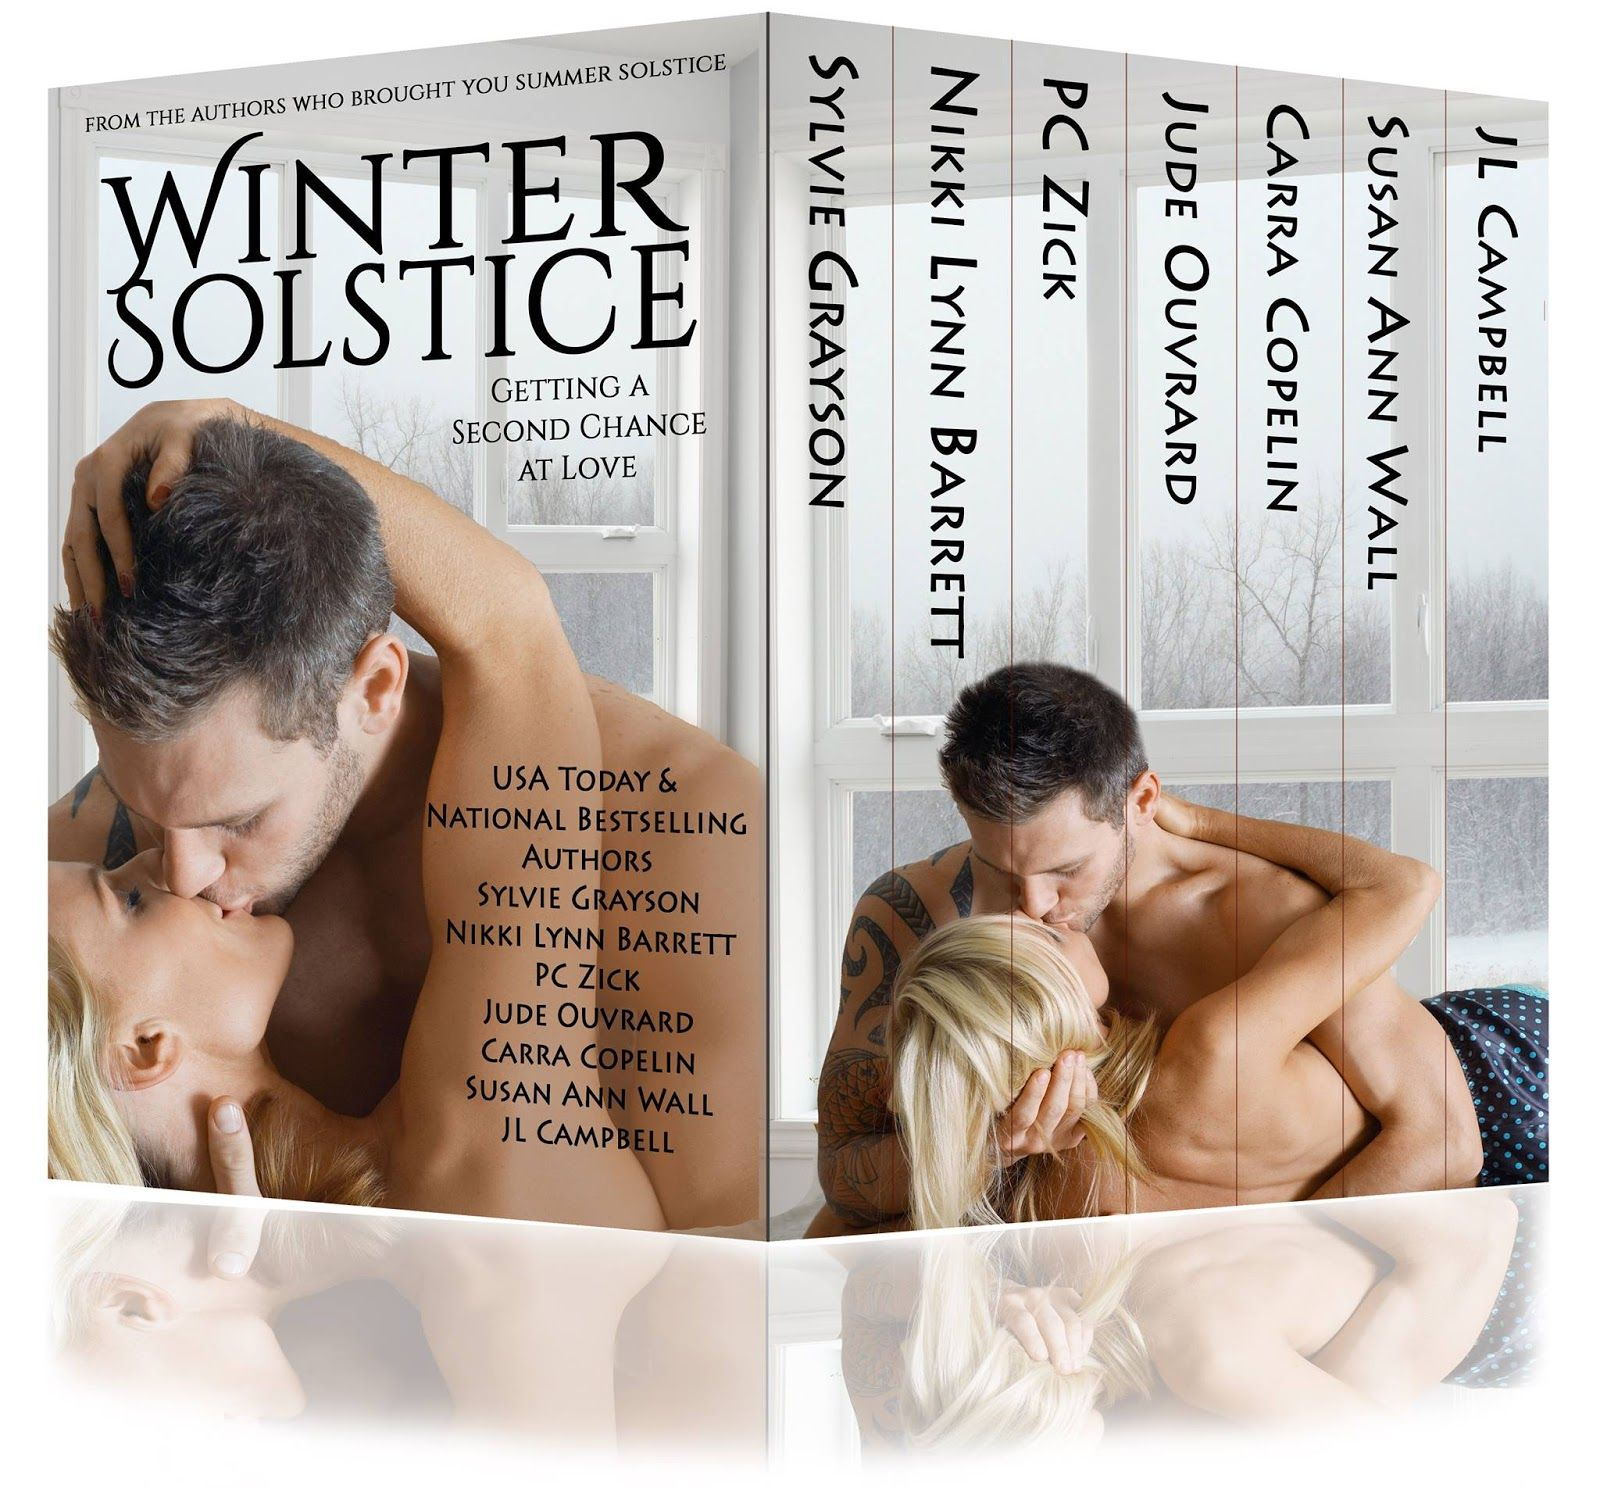 WINTER SOLSTICE   Getting A Second Chance At Love #Boxset #MultiAuthor #6FeetUnderBooks http://6feetunderbooks.blogspot.com/2017/01/winter-solstice.html